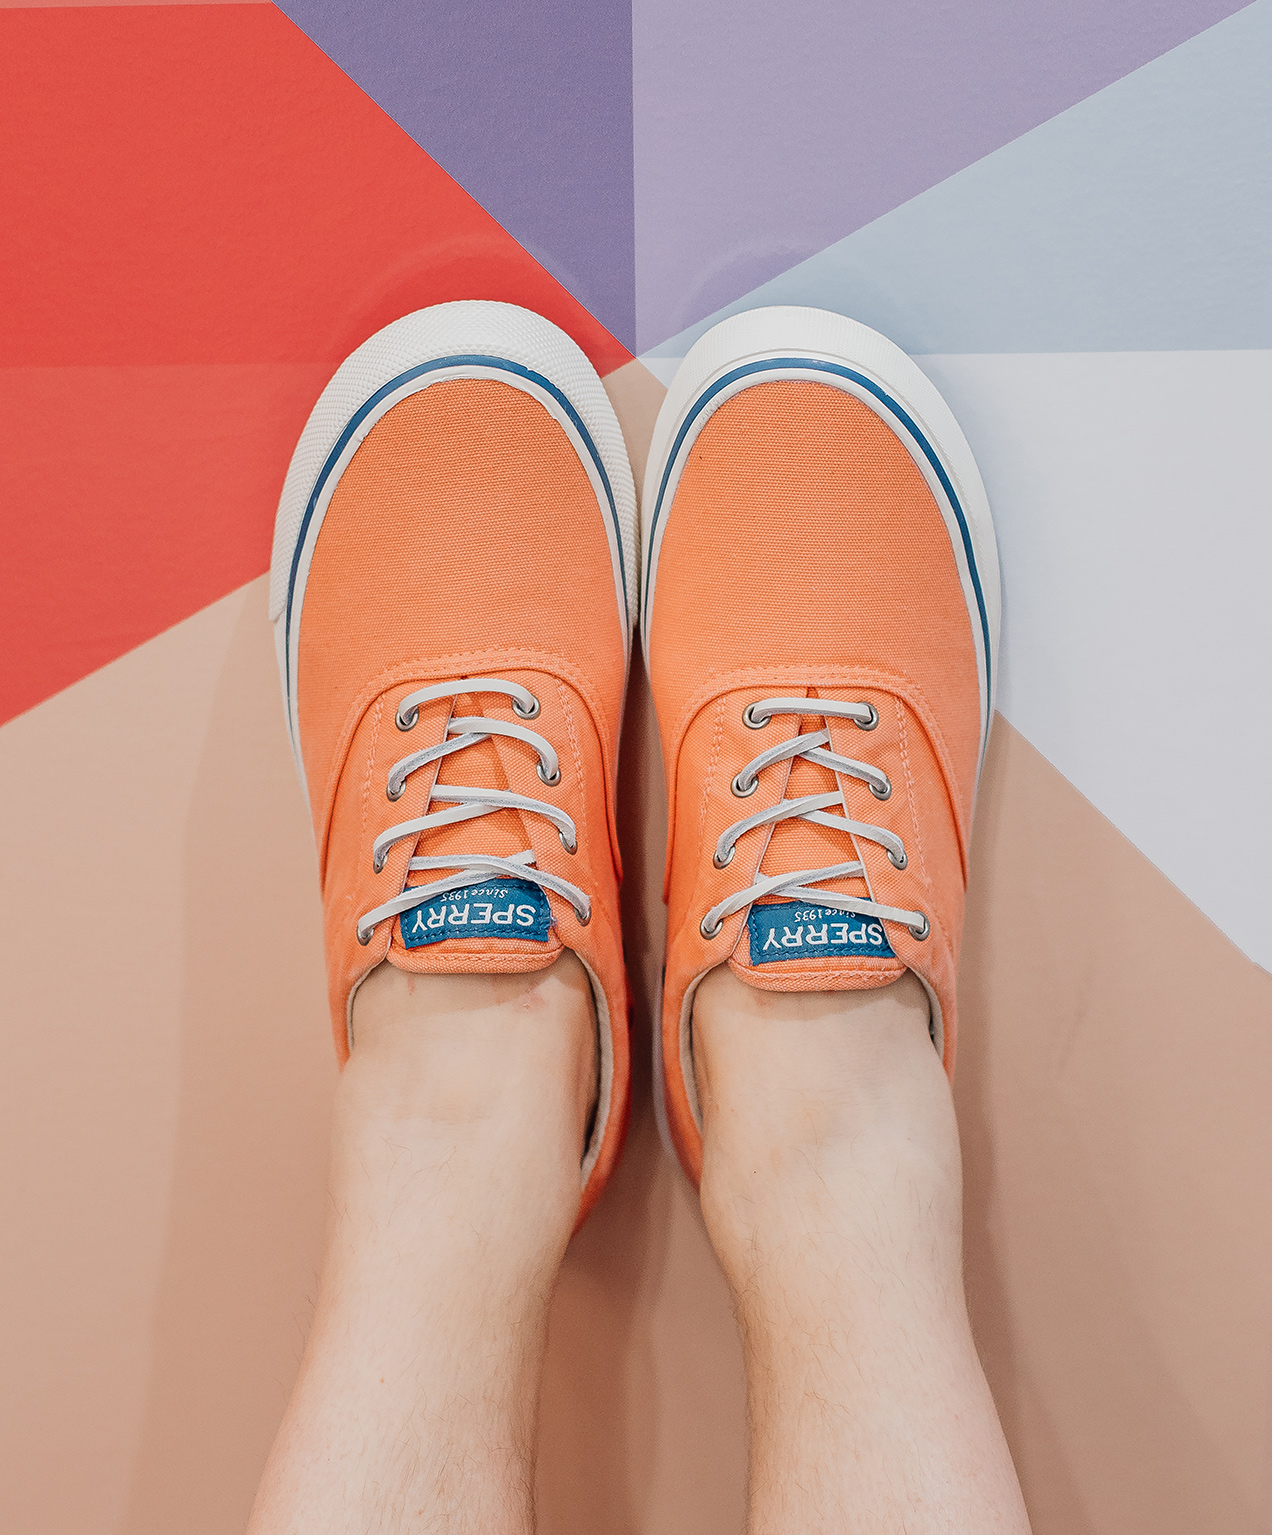 shoe store marketing orange sperry